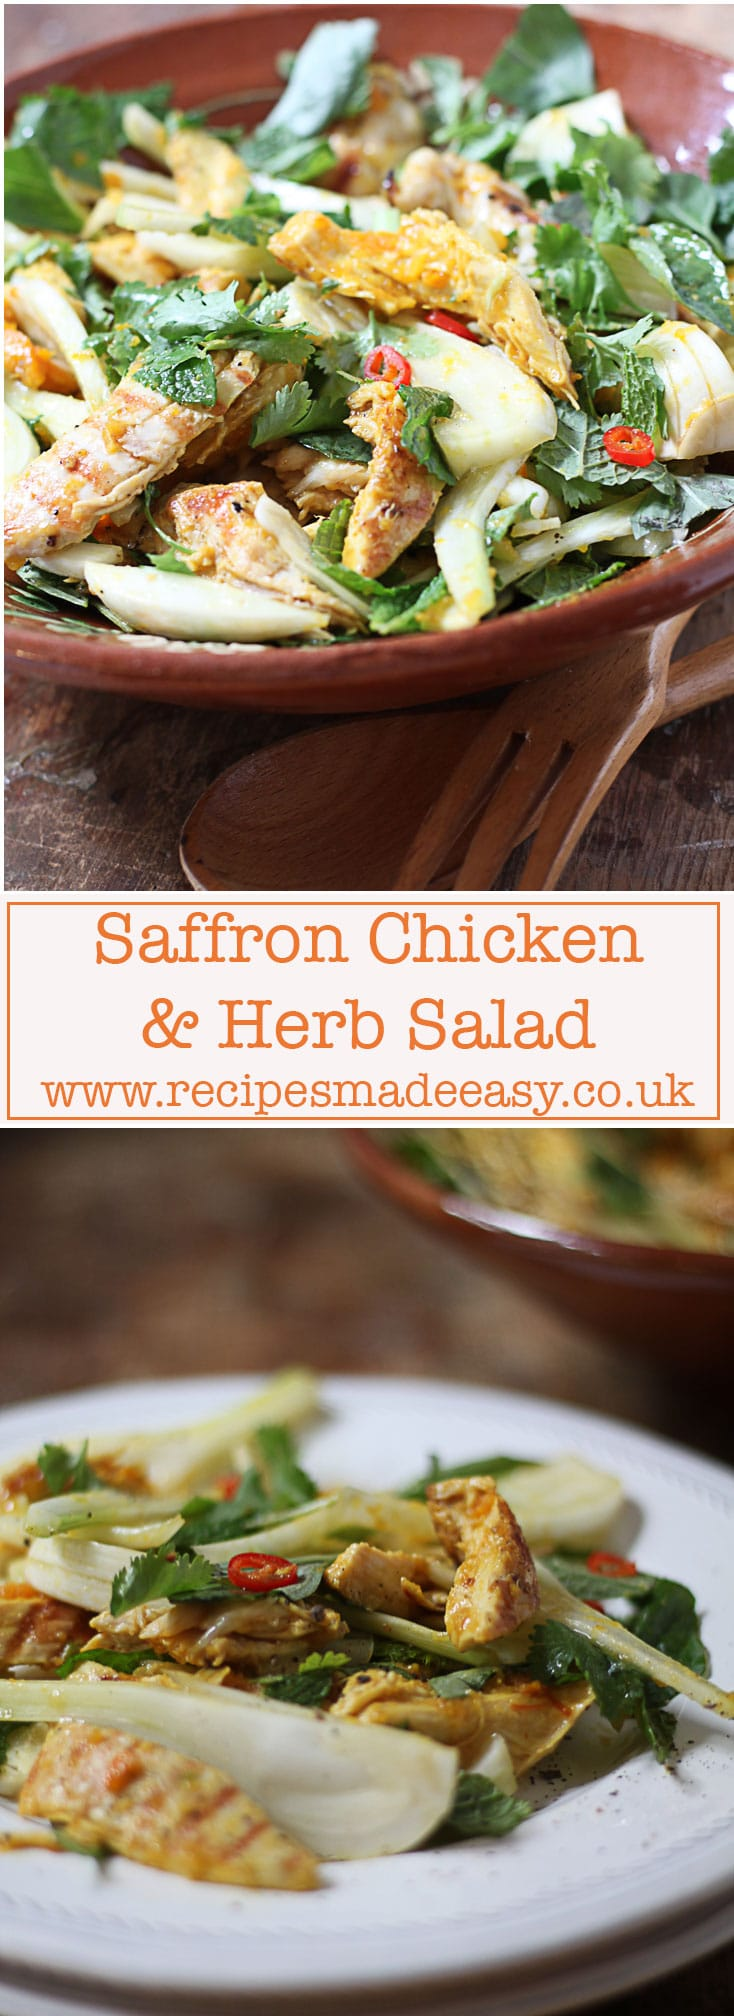 Saffron Chicken and herb salad. Recipes Made Easy